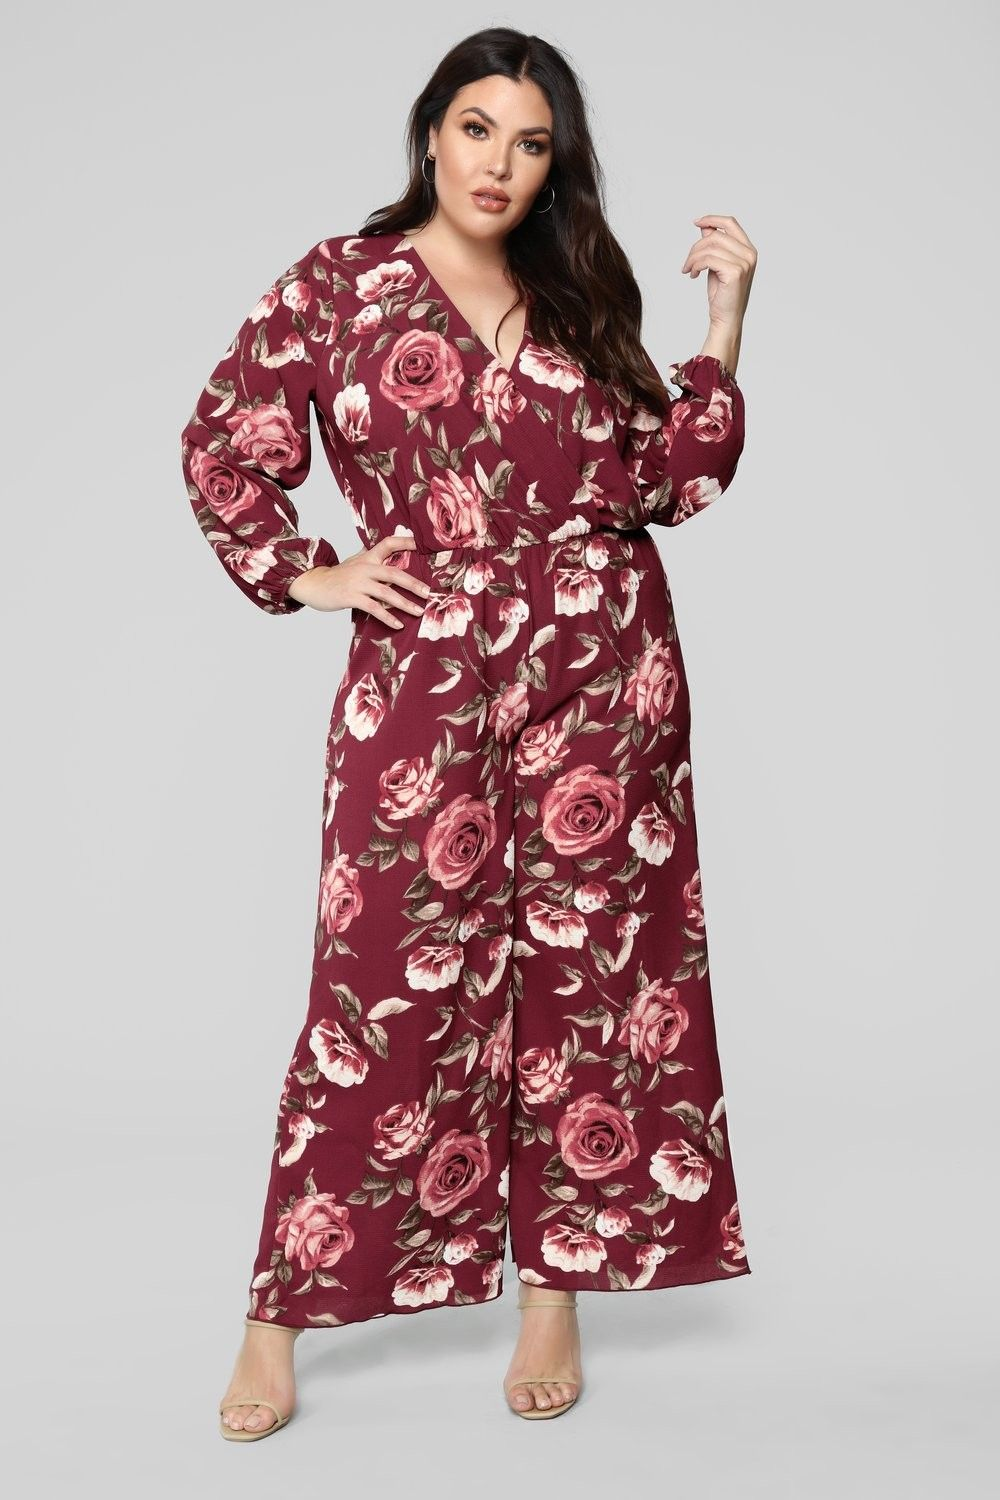 aad0fc573b Plus Size Smell The Roses Long Sleeve Jumpsuit - Burgundy  39.99  ootd   style  fashion  streetstyle  fashionable  outfitpost  trendy  beauty  moda   plussize ...